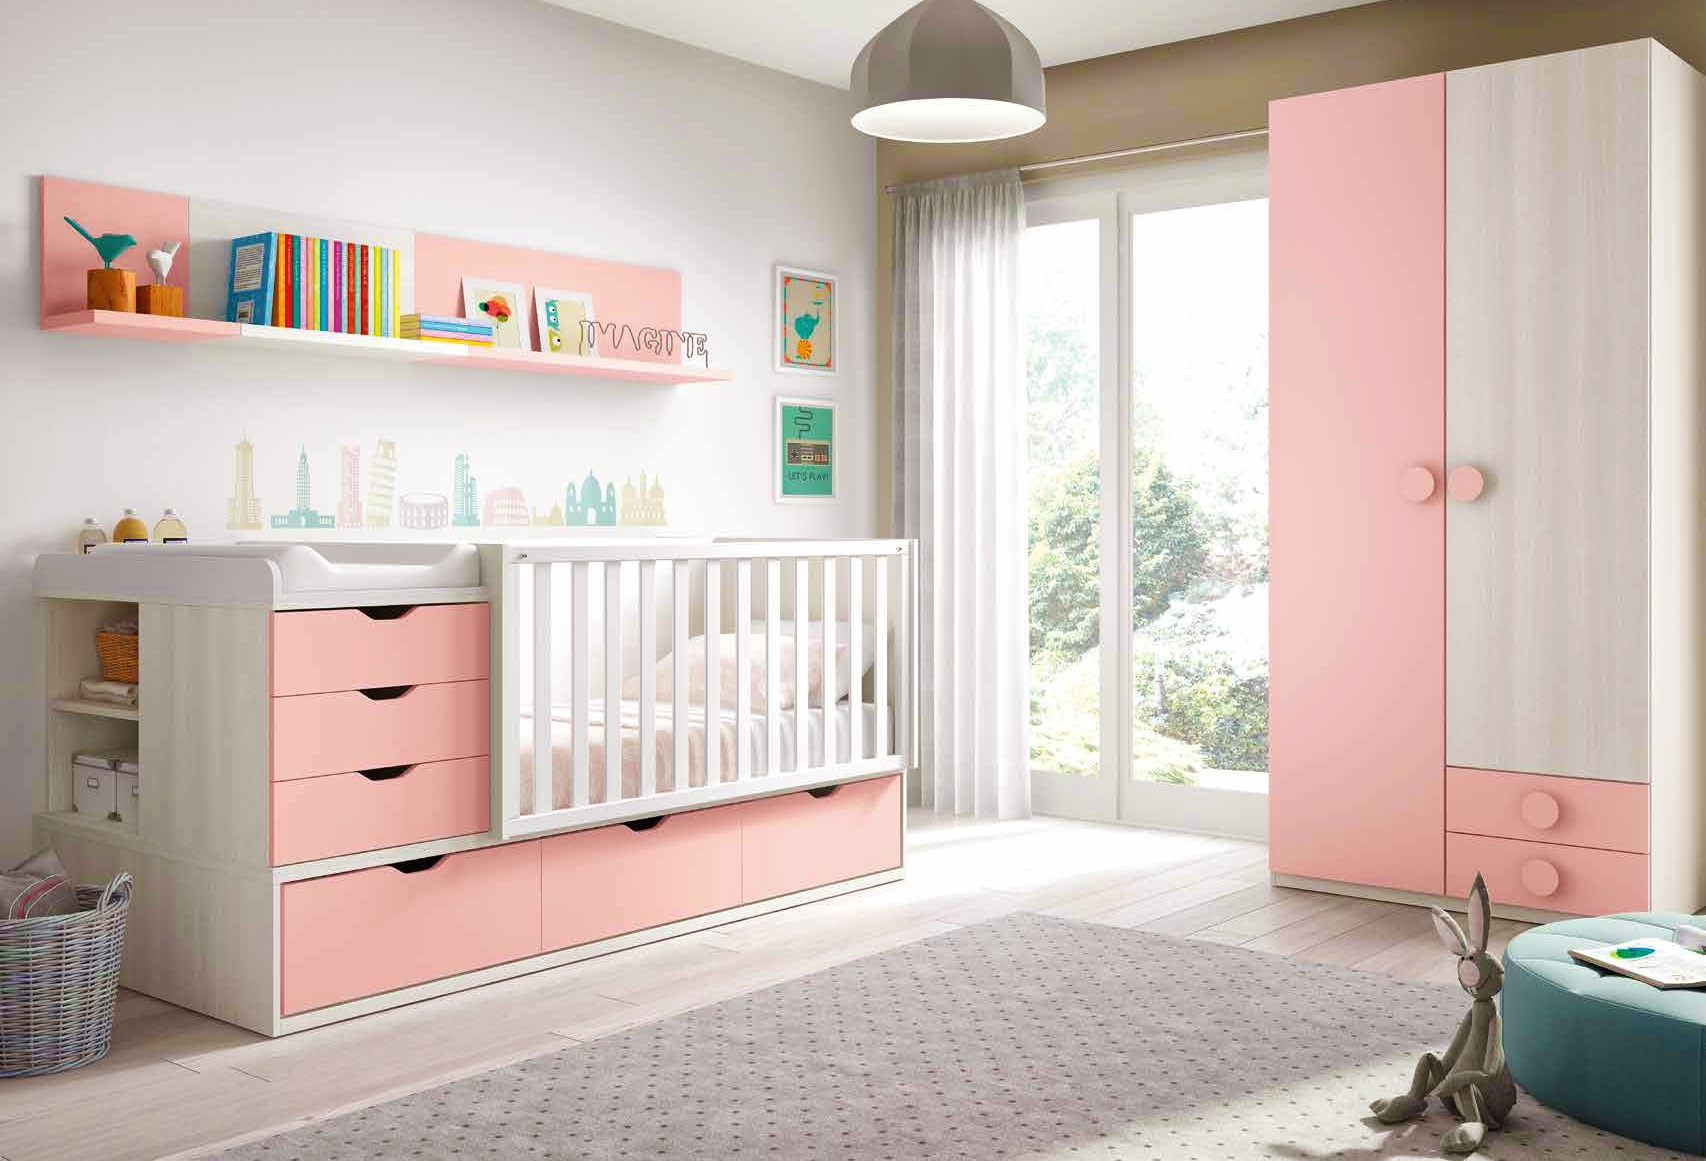 Chambre de b b fille compl te avec lit volutif for Photo de chambre de bebe fille